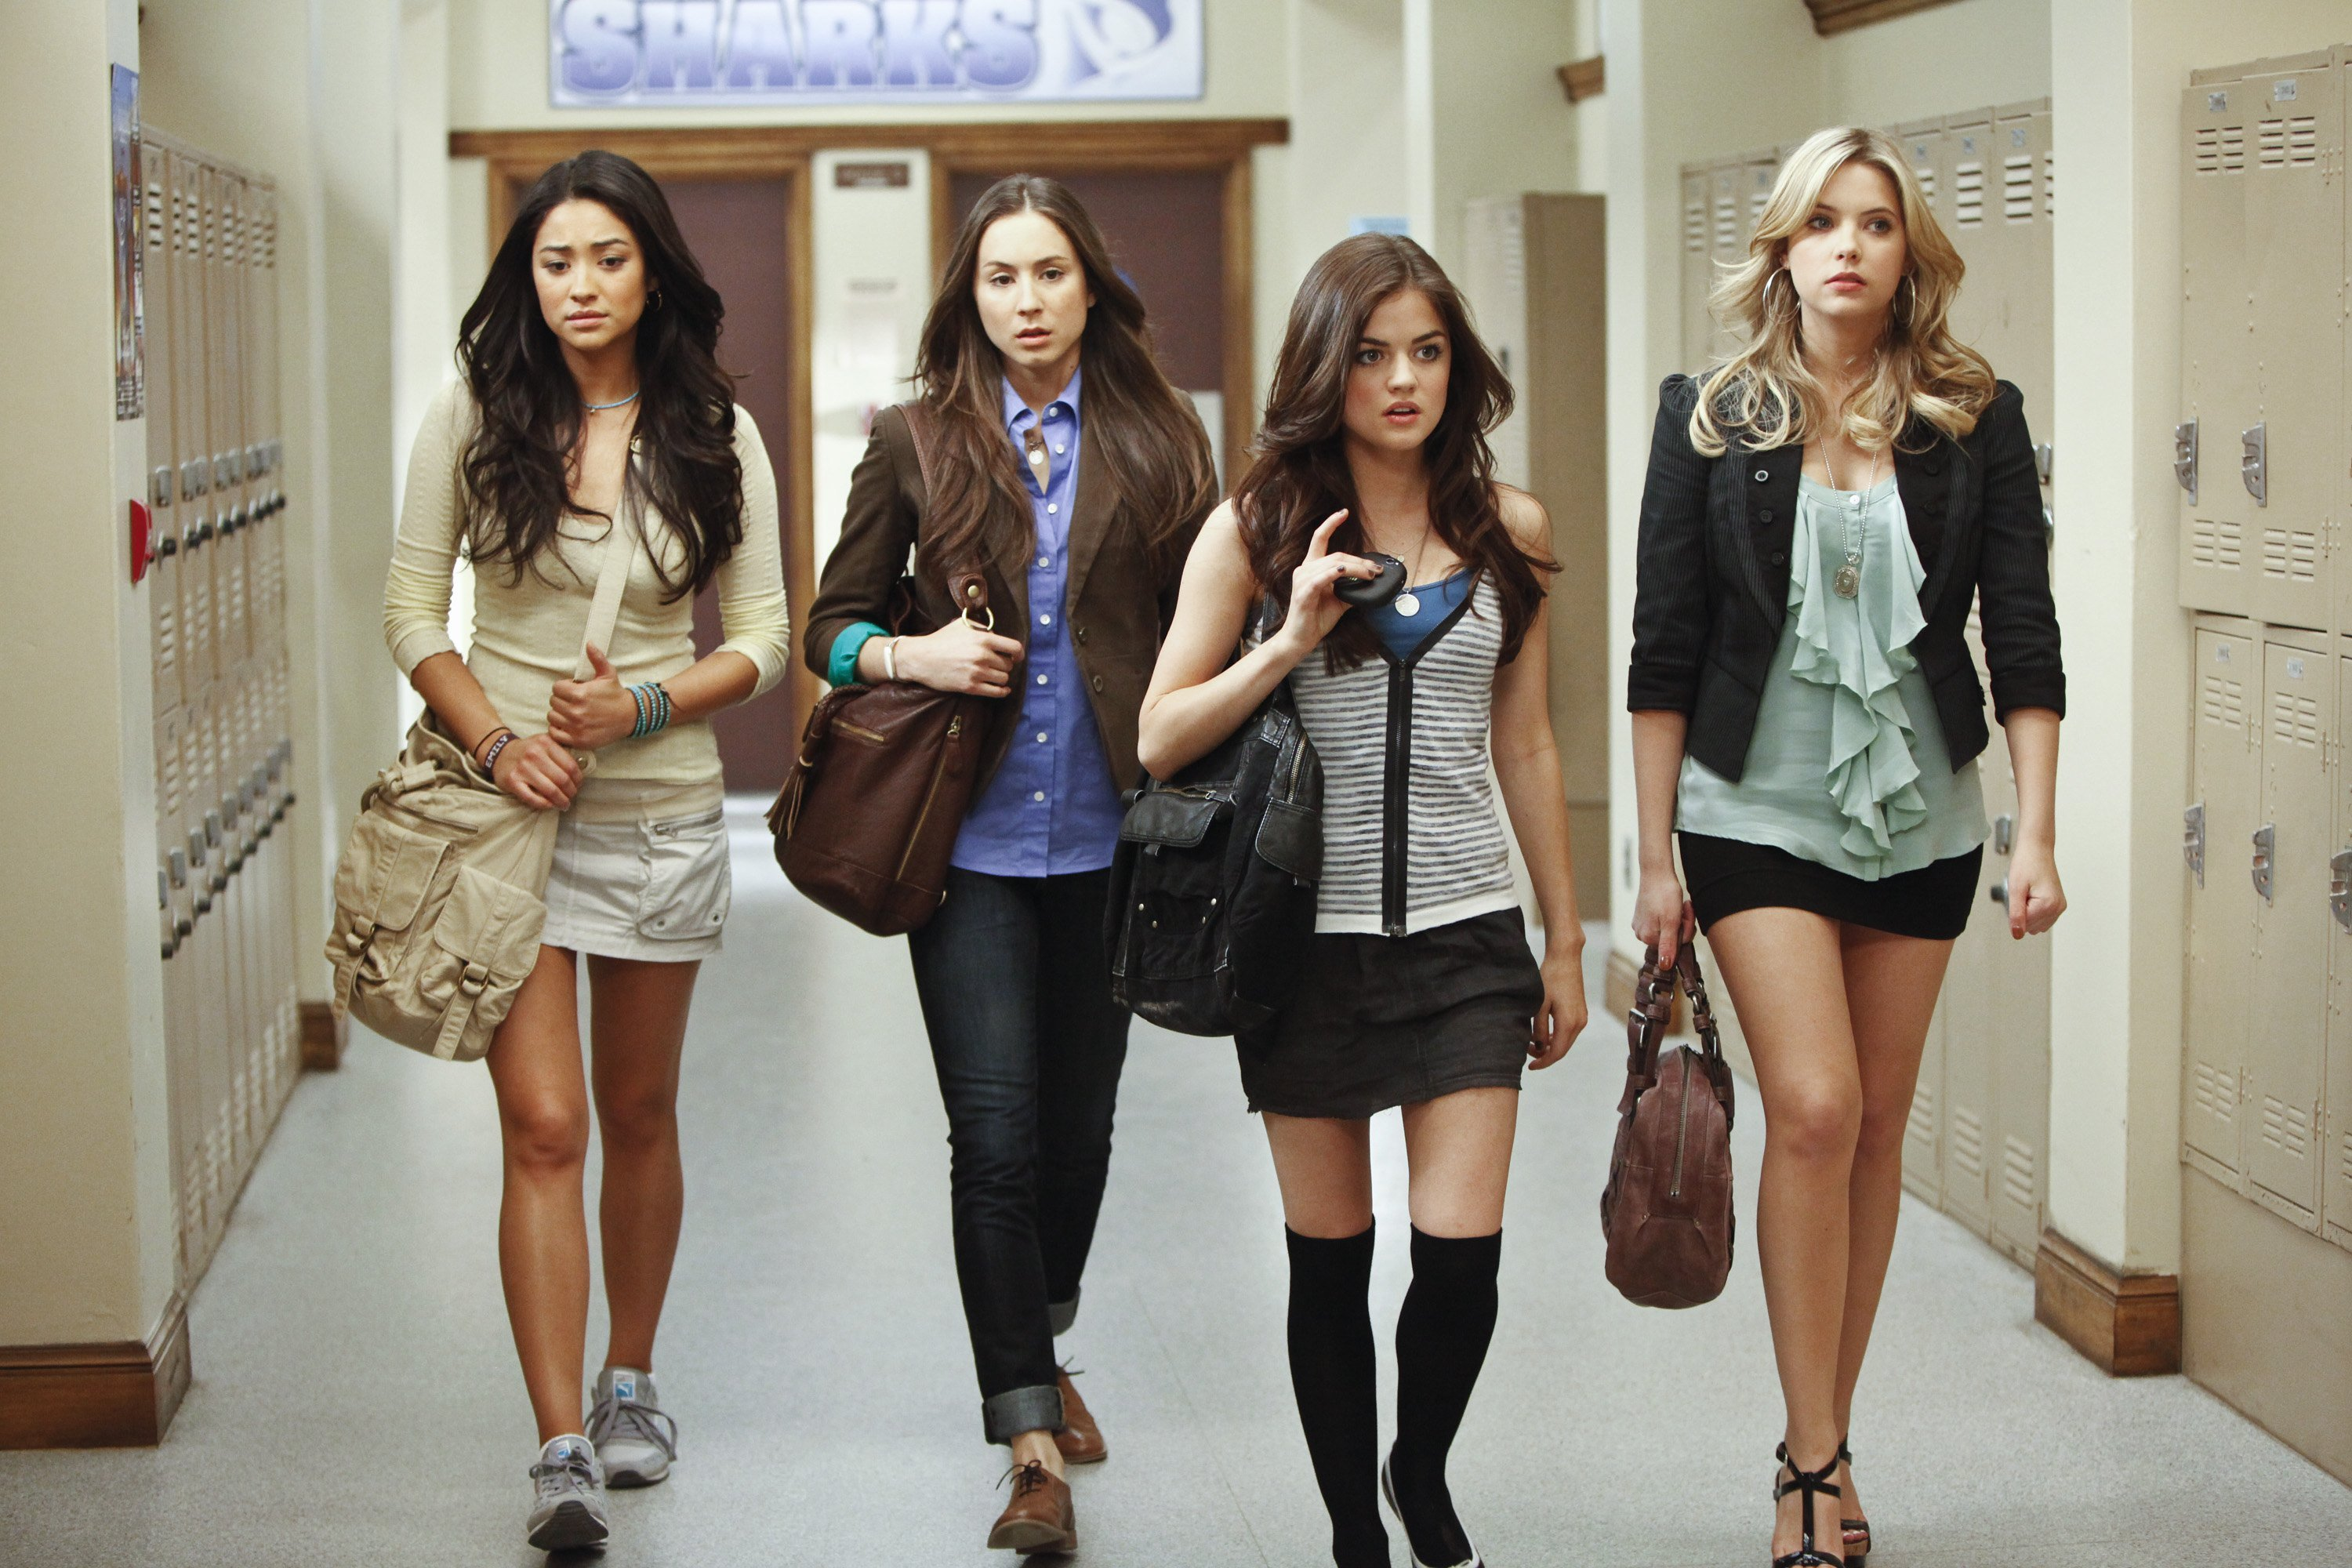 """ABC Family's """"Pretty Little Liars"""" - Season One Photo by Jamie Trueblood/Disney General Entertainment Content, 2010 